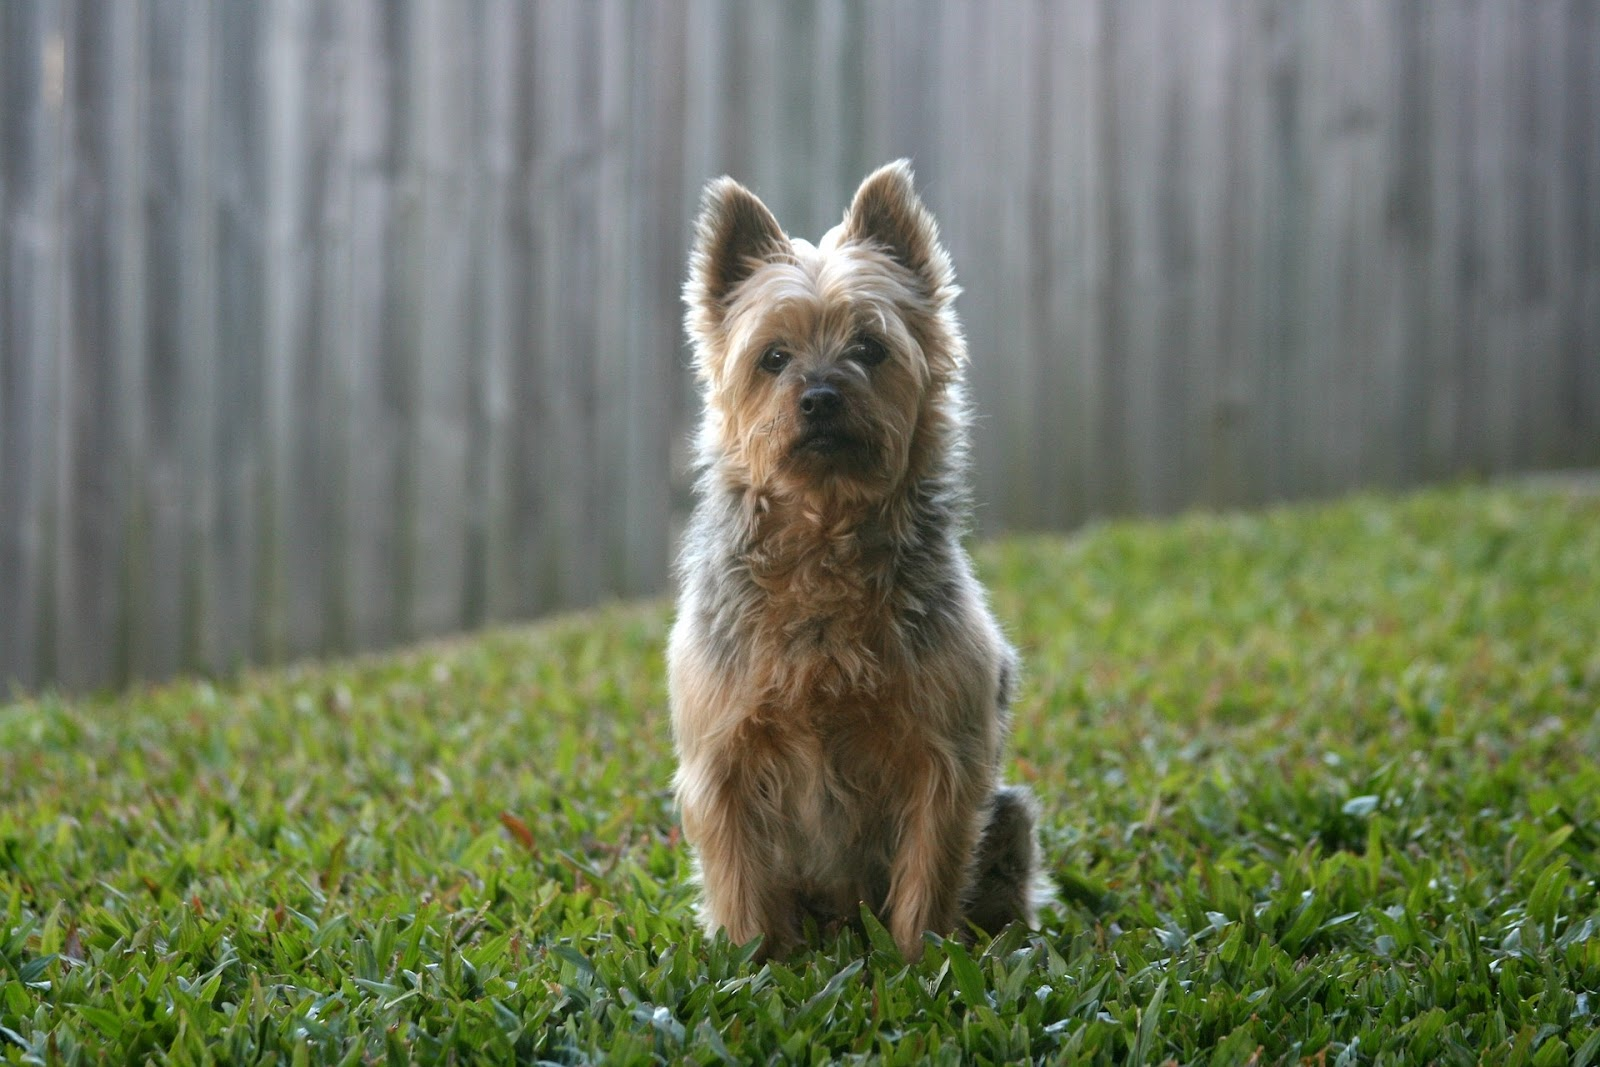 little brown dog sitting in grass in front of a fence